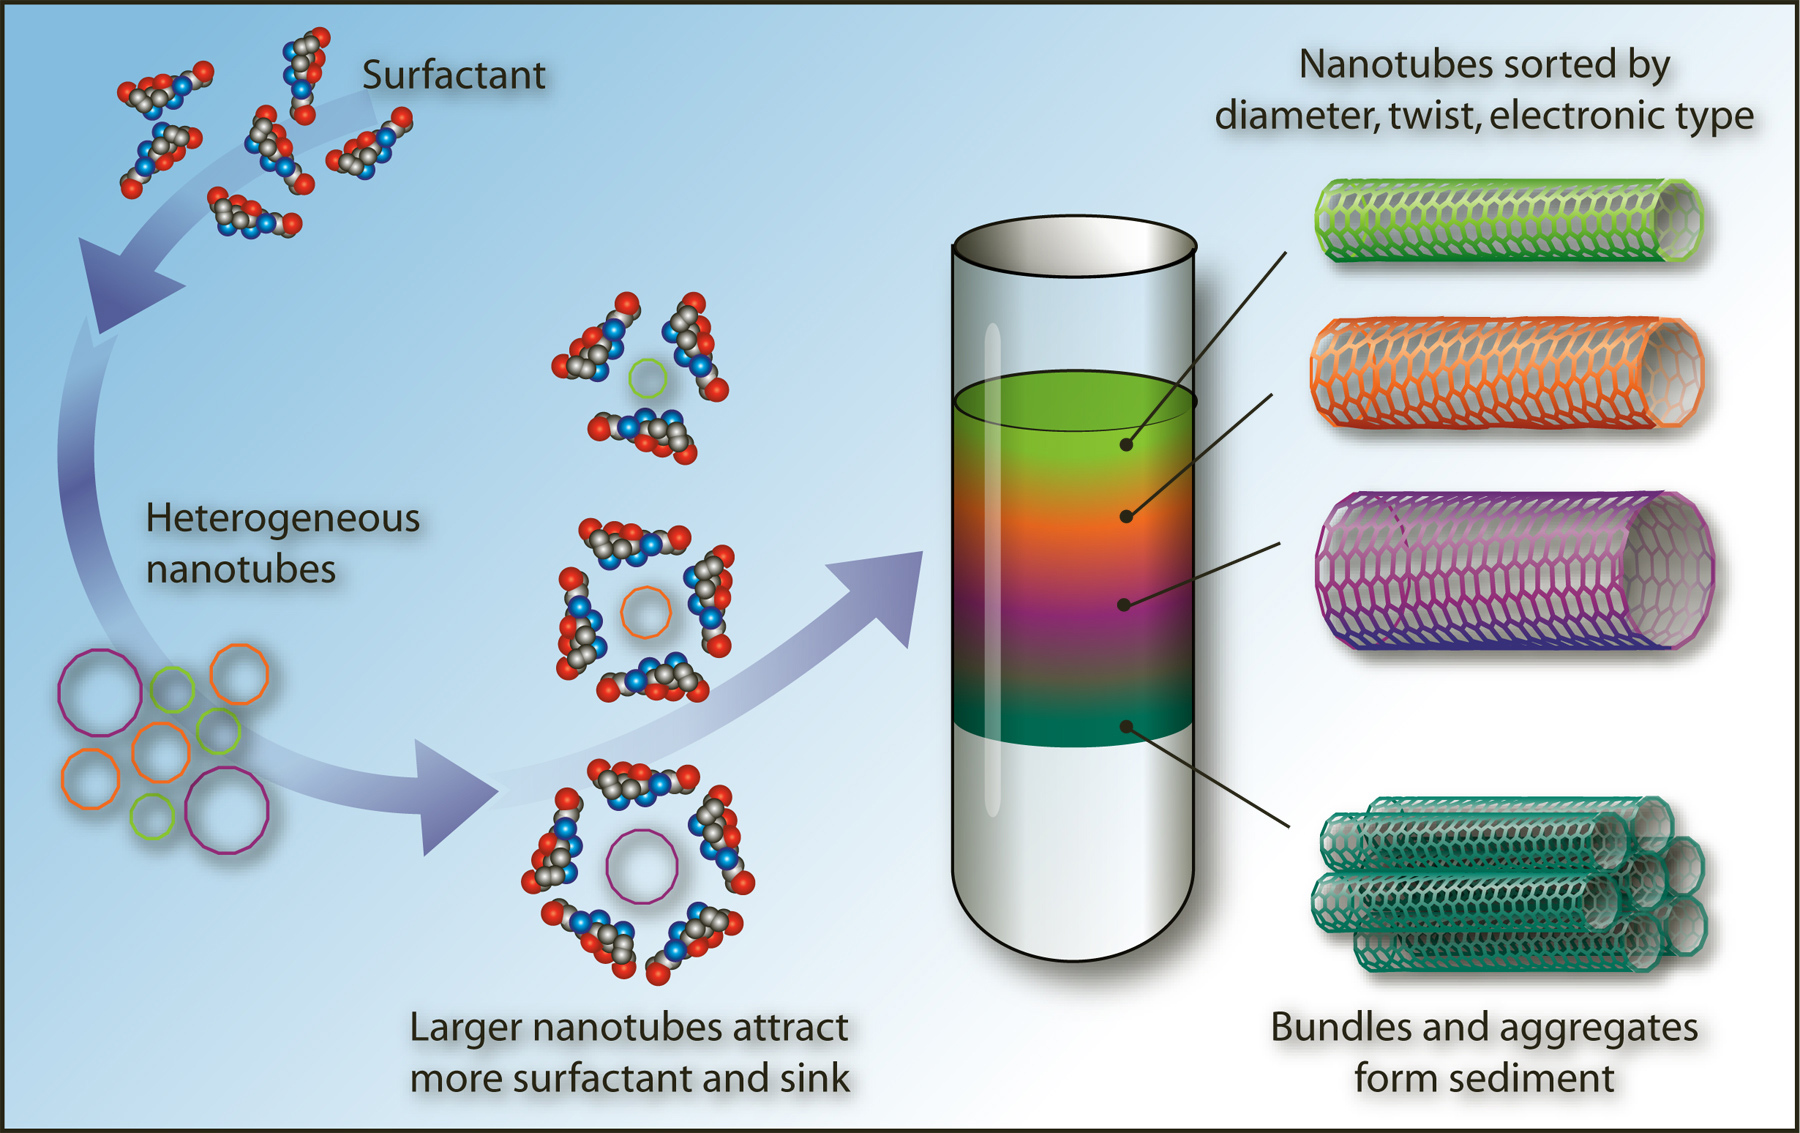 a study on nanotechnologies and the potential applications of nanotube fibers and carbon nanotubes c Importance of nanotechnology in architecture n a n o t e c applications these include potential carbon nanotubes amazingly strong fibers.